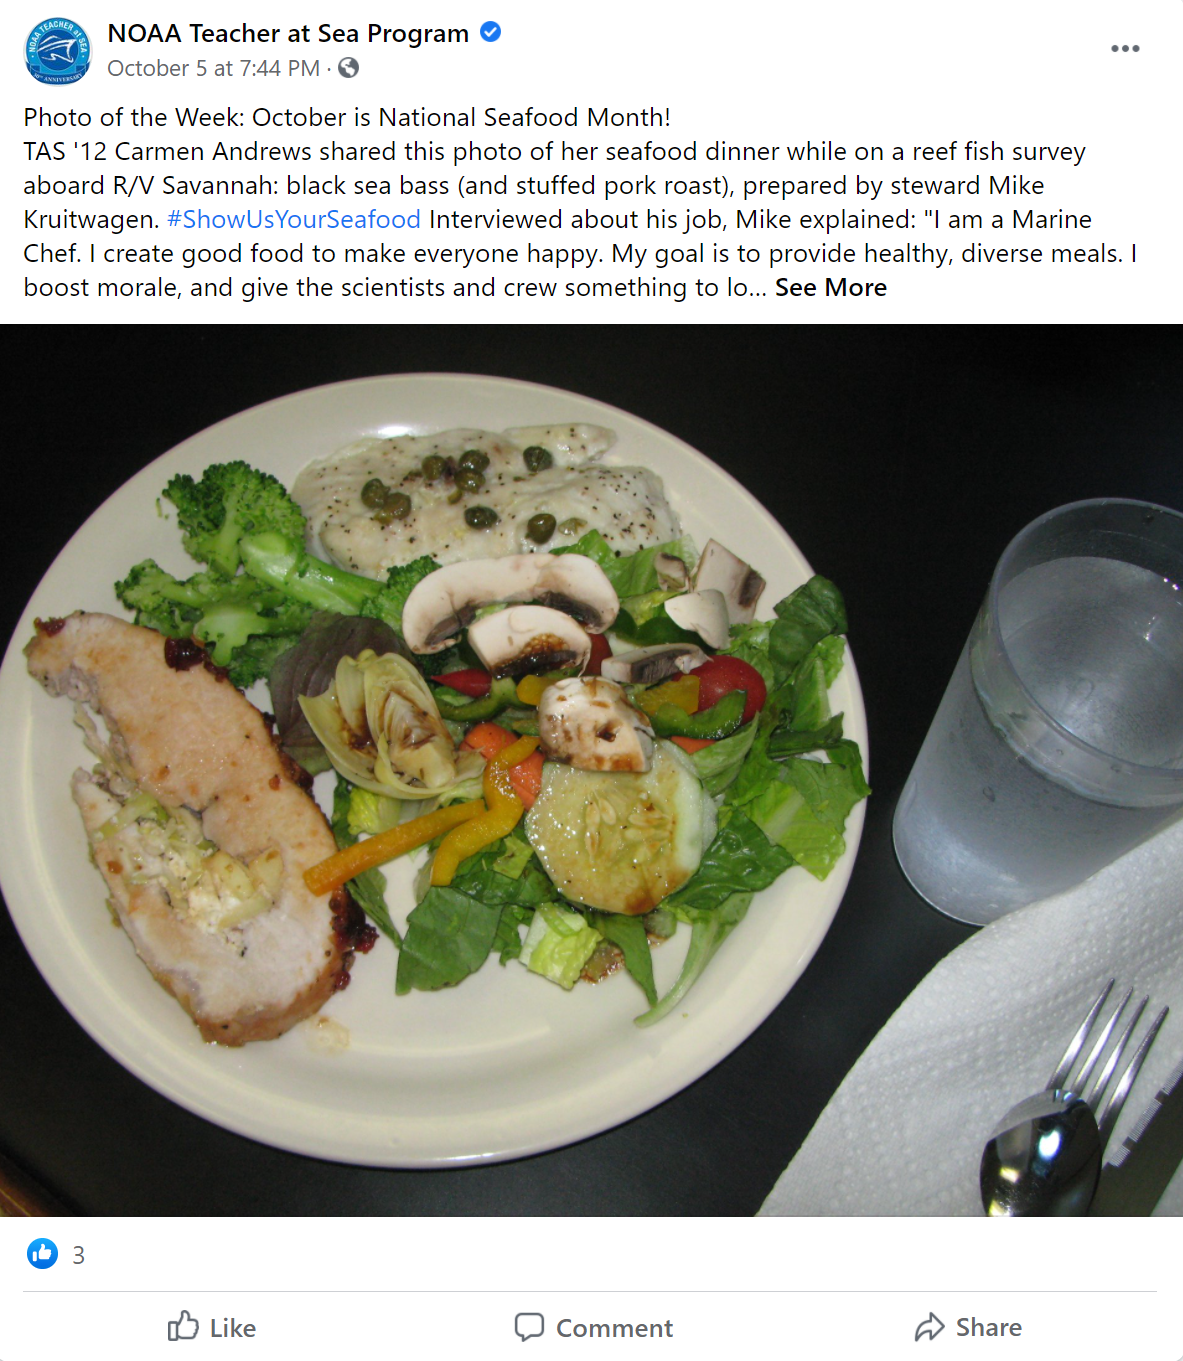 Facebook post from the Teacher and Sea program with a photo of a black sea bass dish